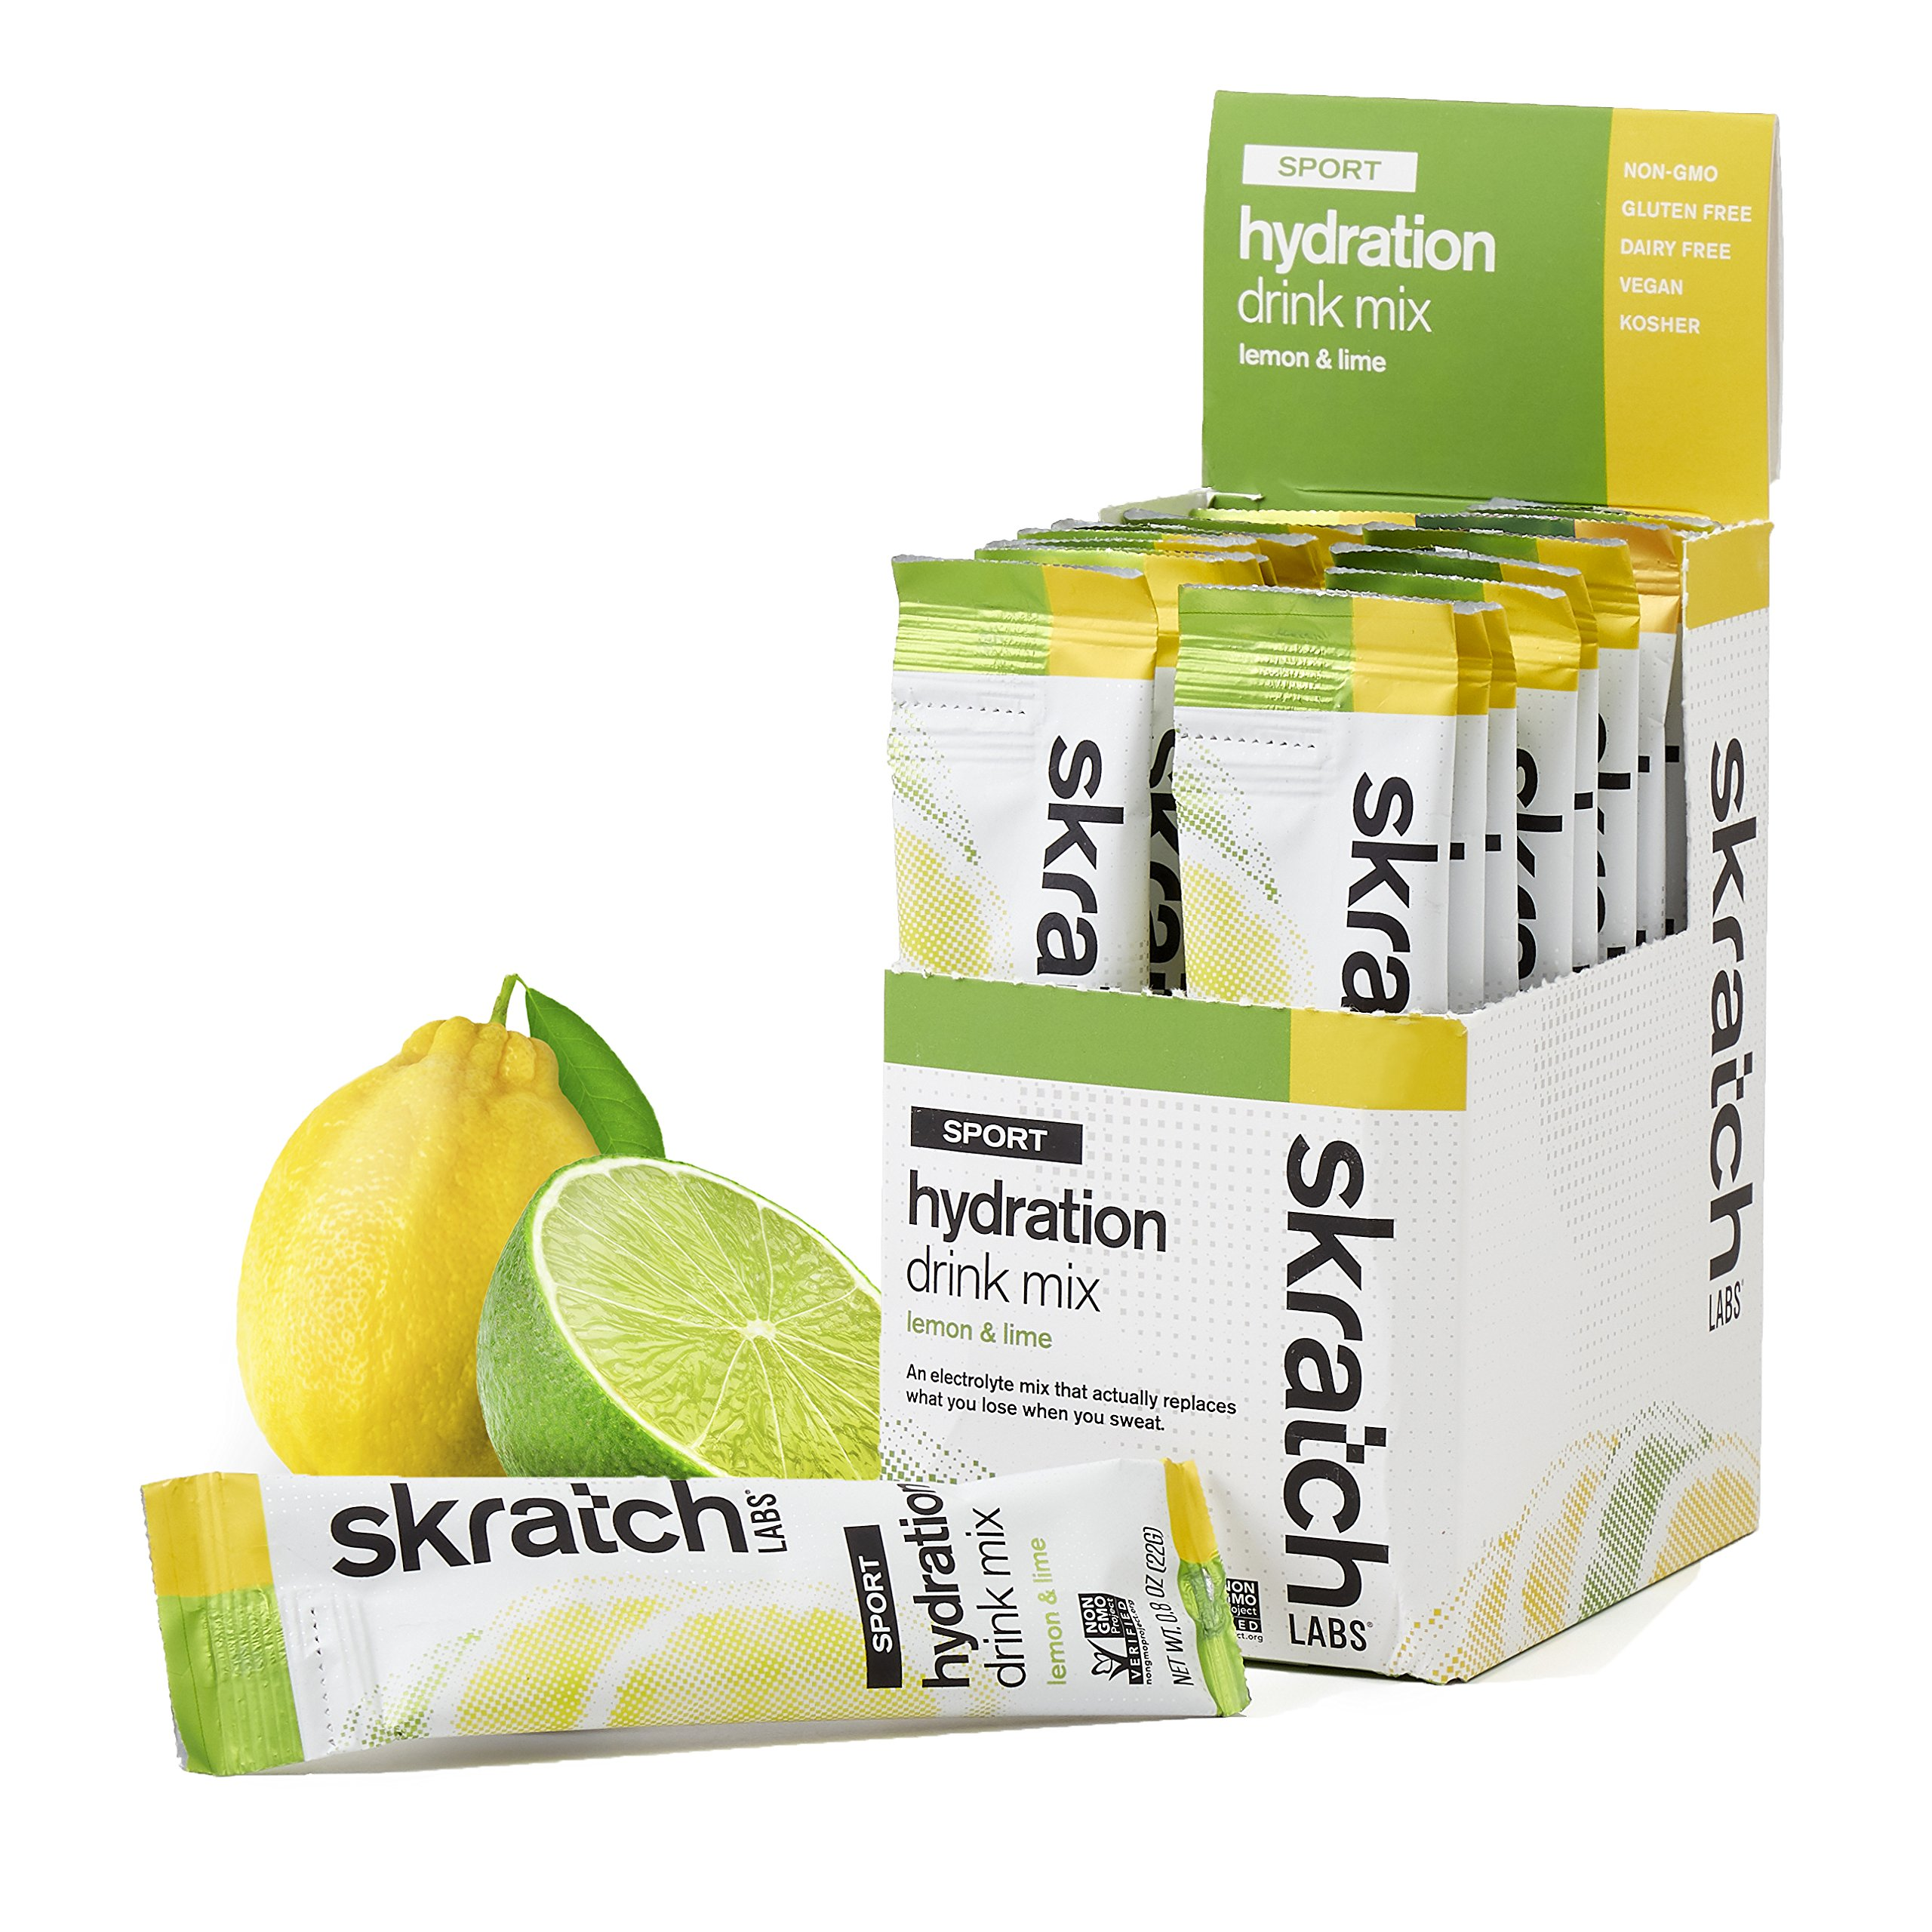 SKRATCH LABS, Sport Hydration Drink Mix, with Lemon and Lime, 20 pack box (non-GMO, dairy free, gluten free, kosher, vegan)